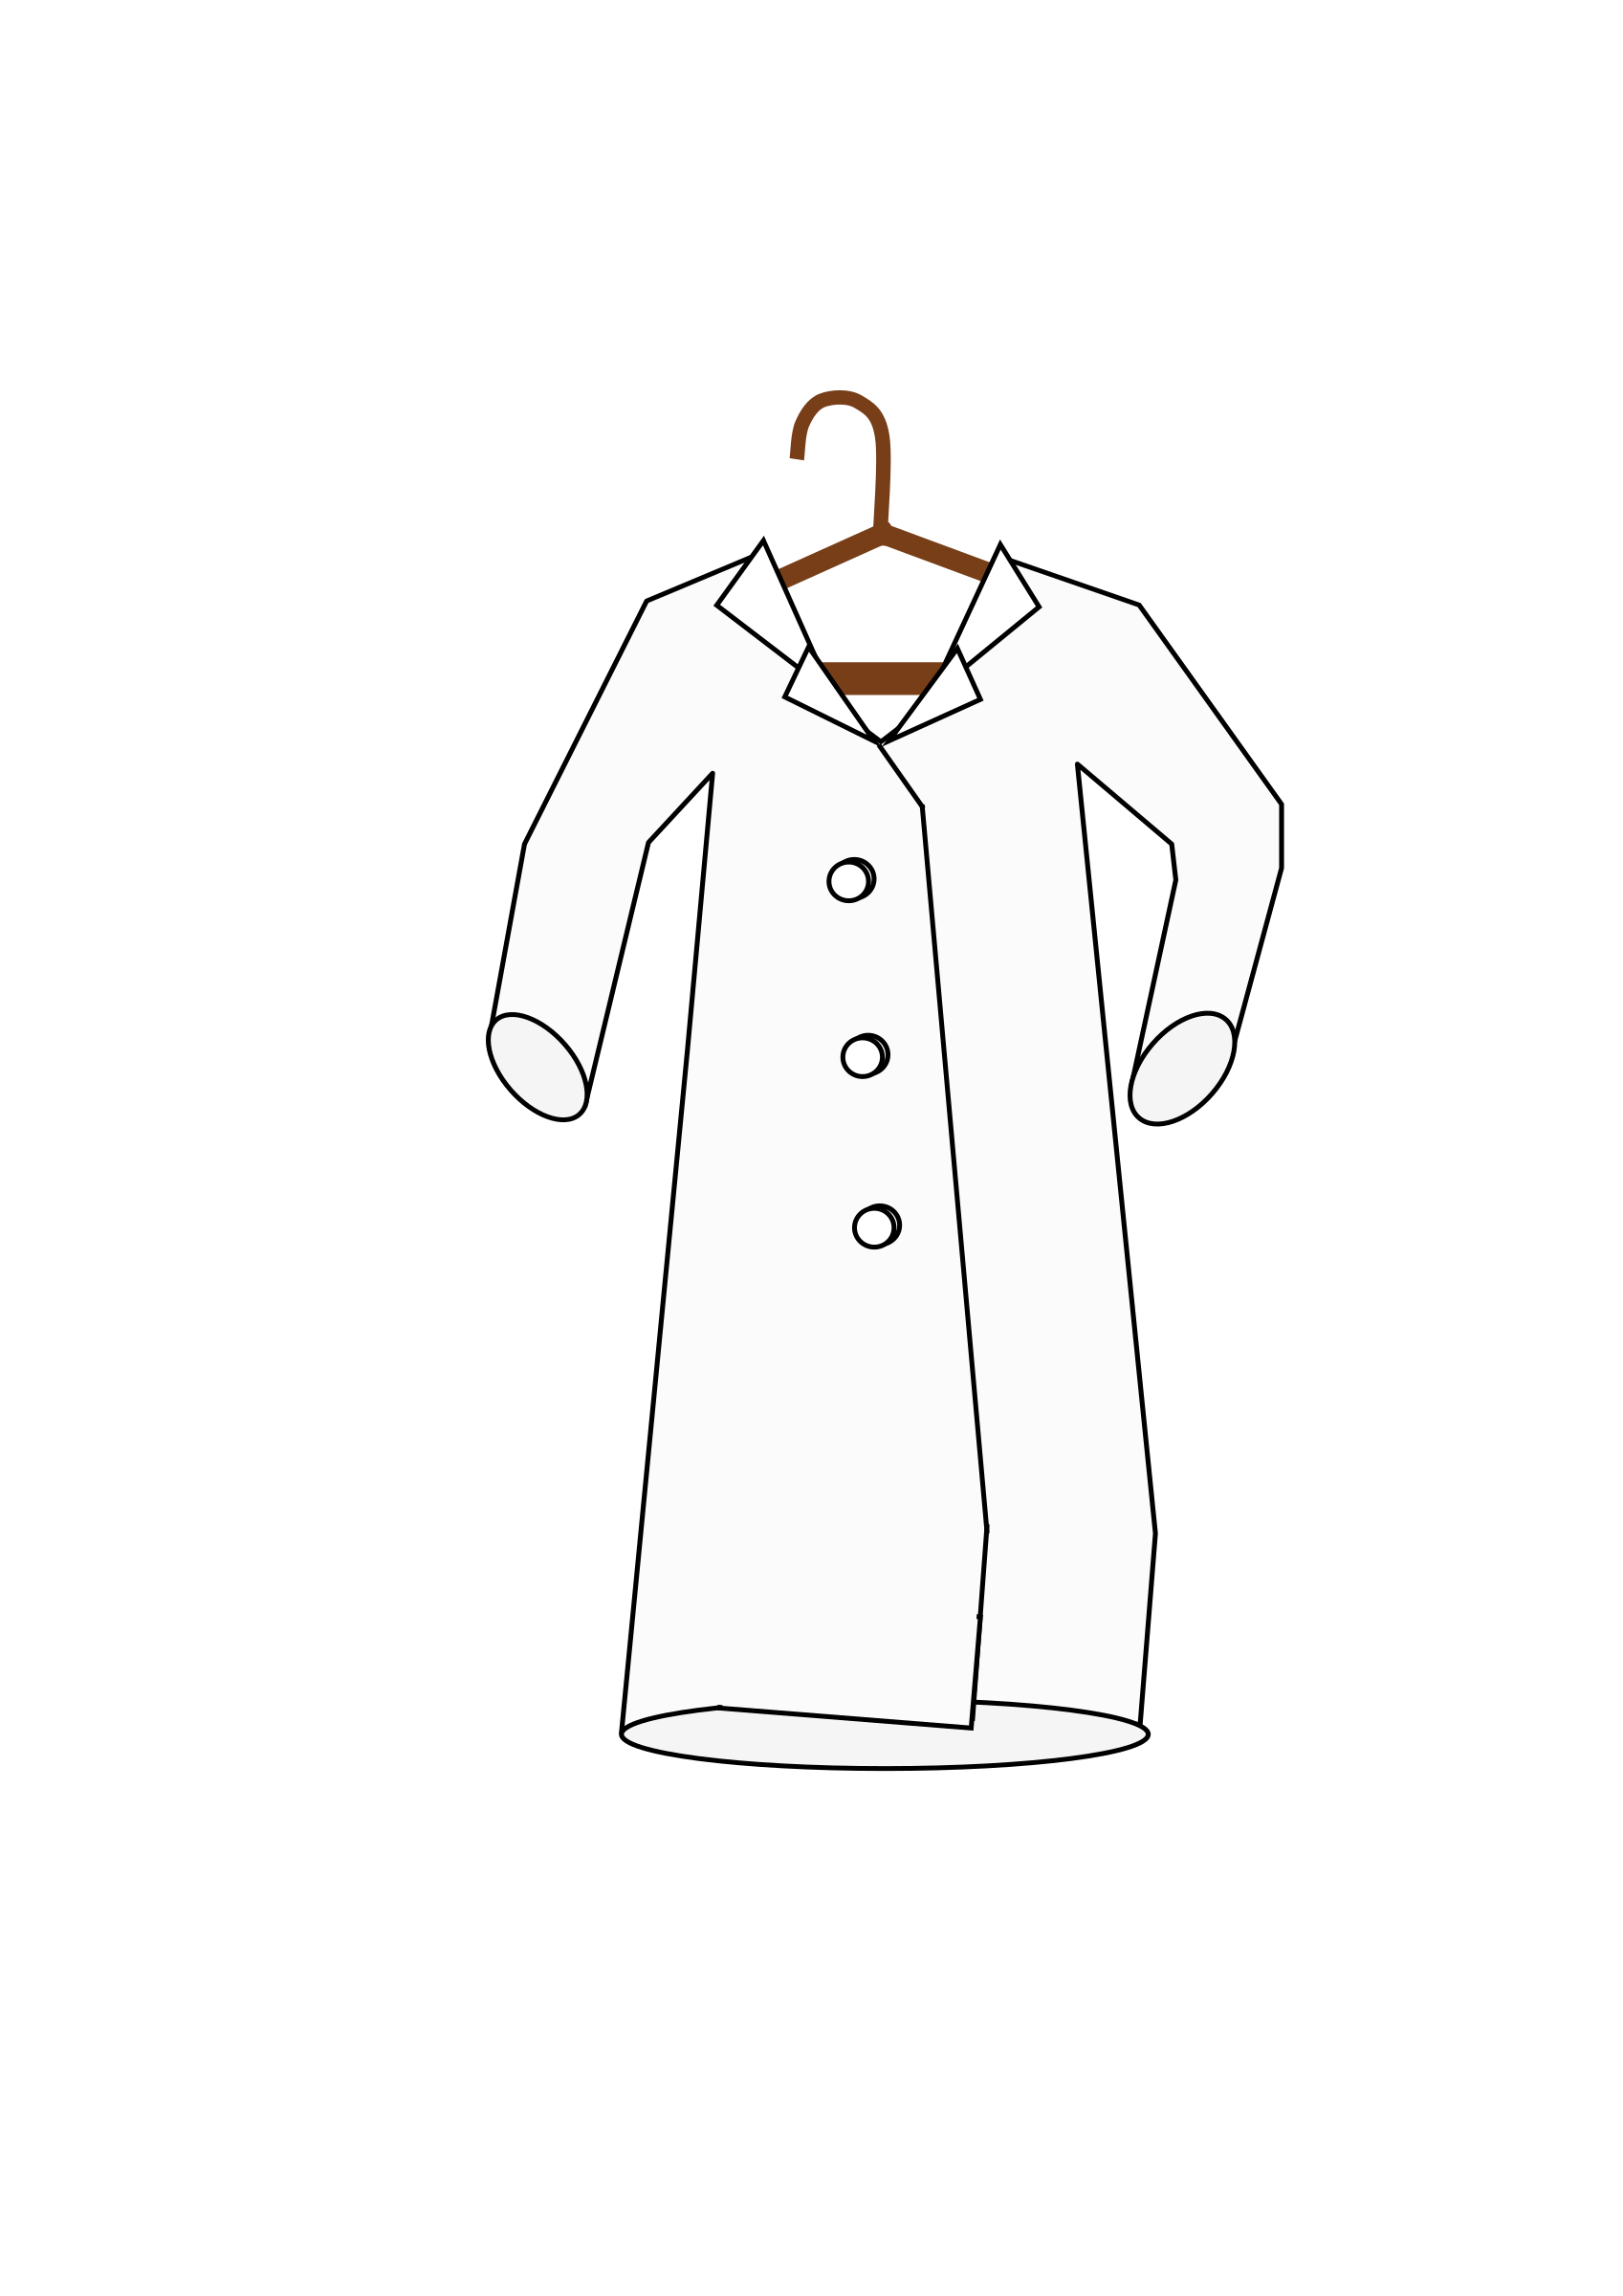 Jacket clipart chef coat. Lab on a hanger